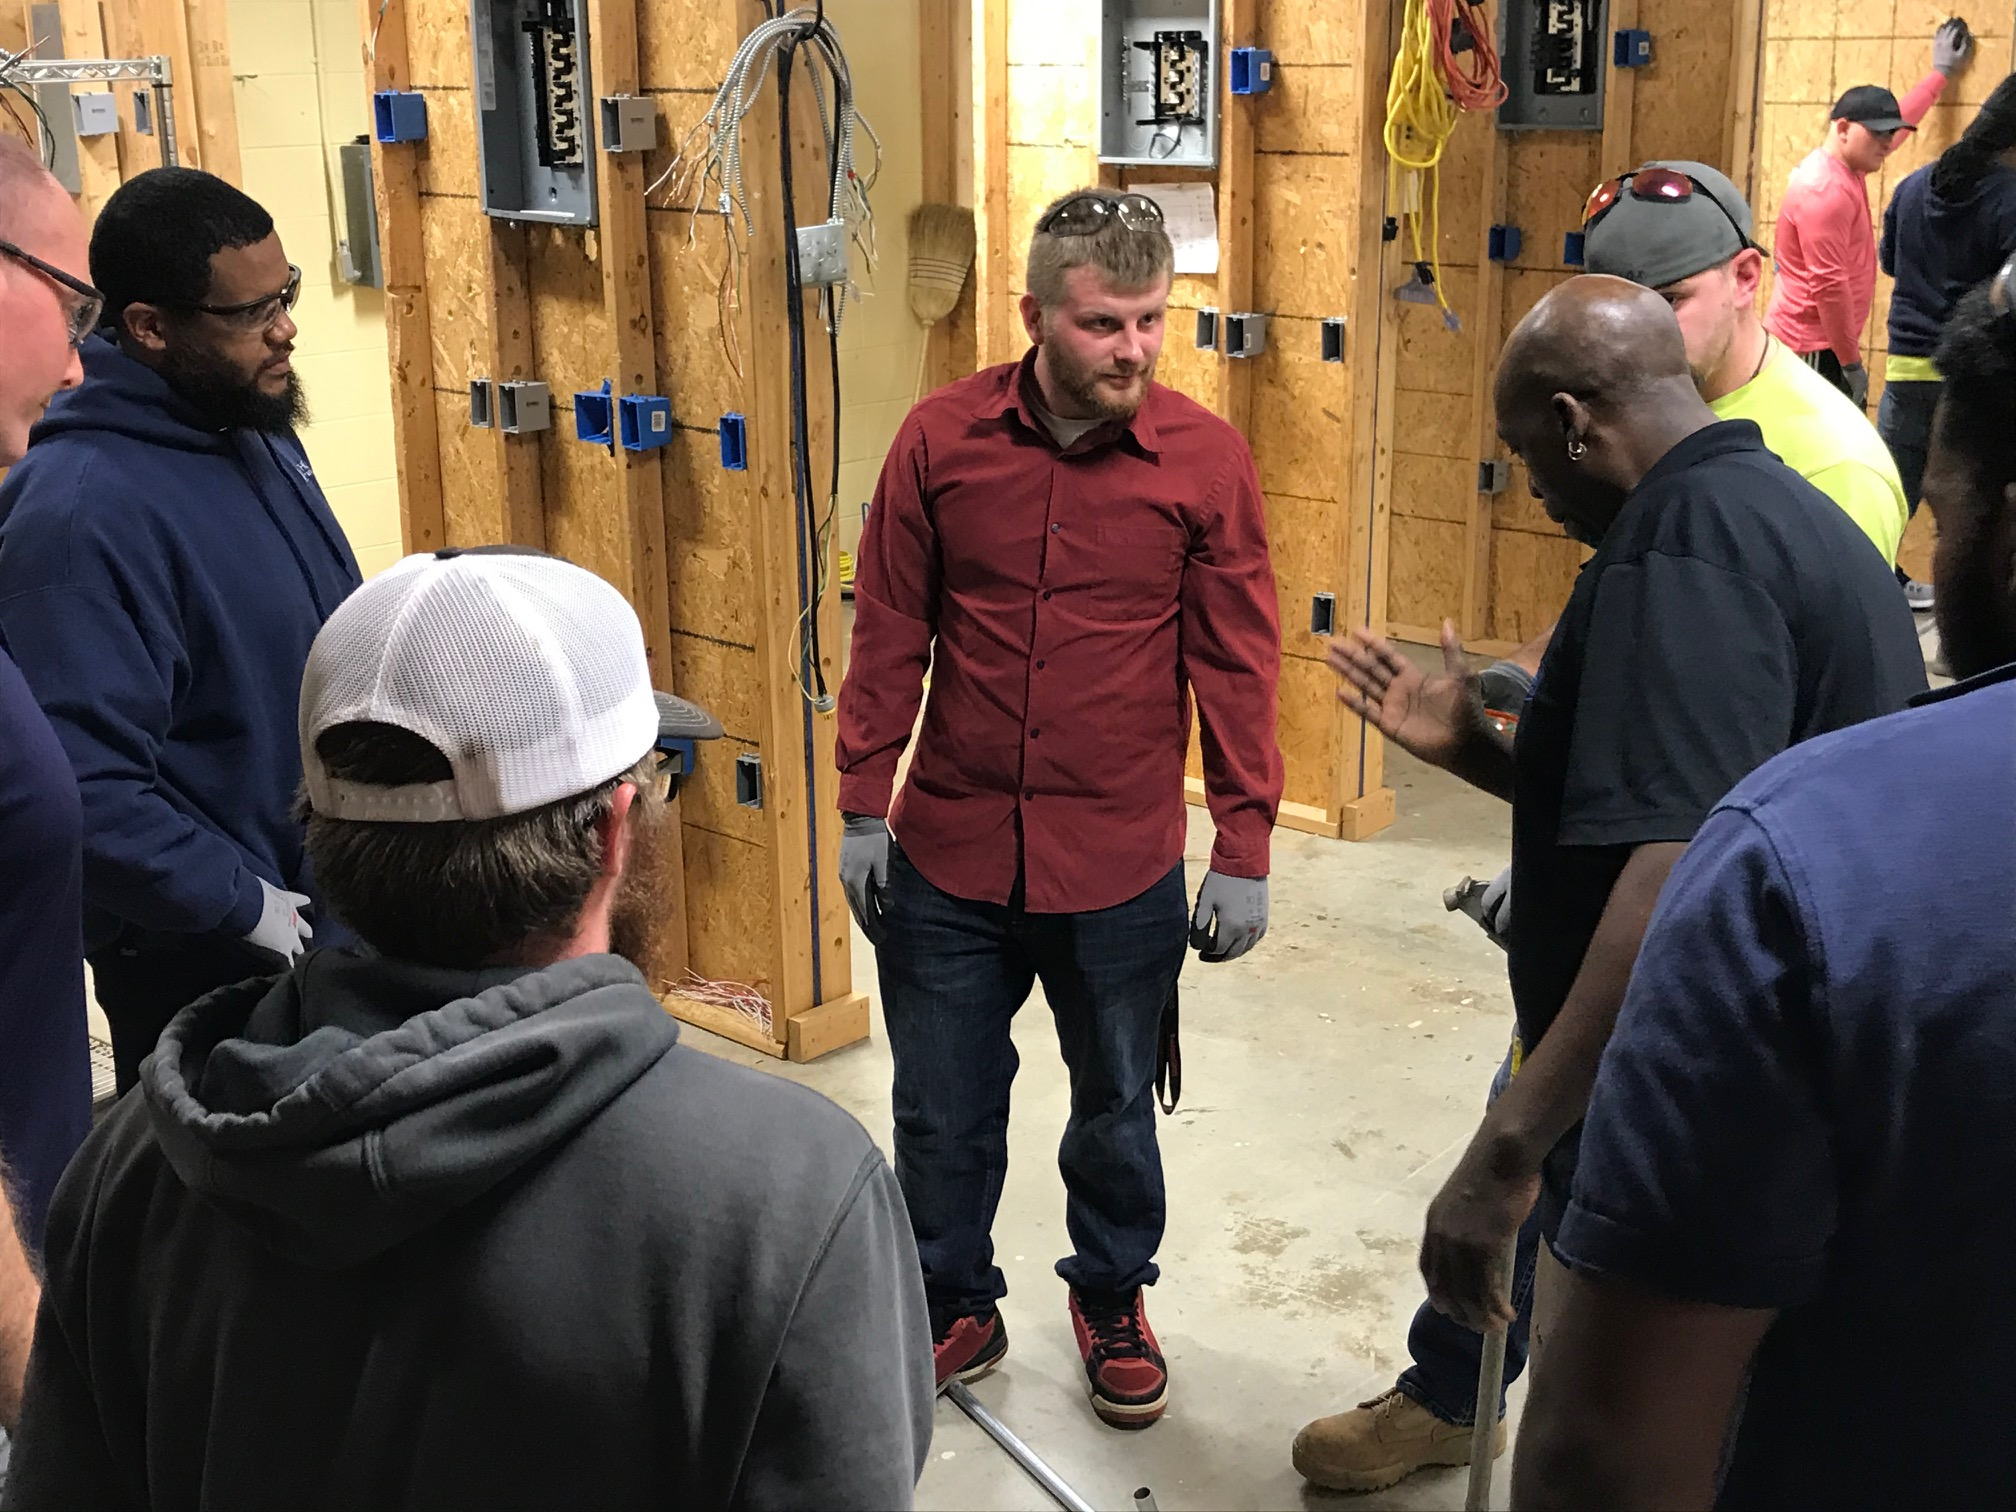 ADULT EDUCATION AND APPRENTICESHIP PROGRAMS